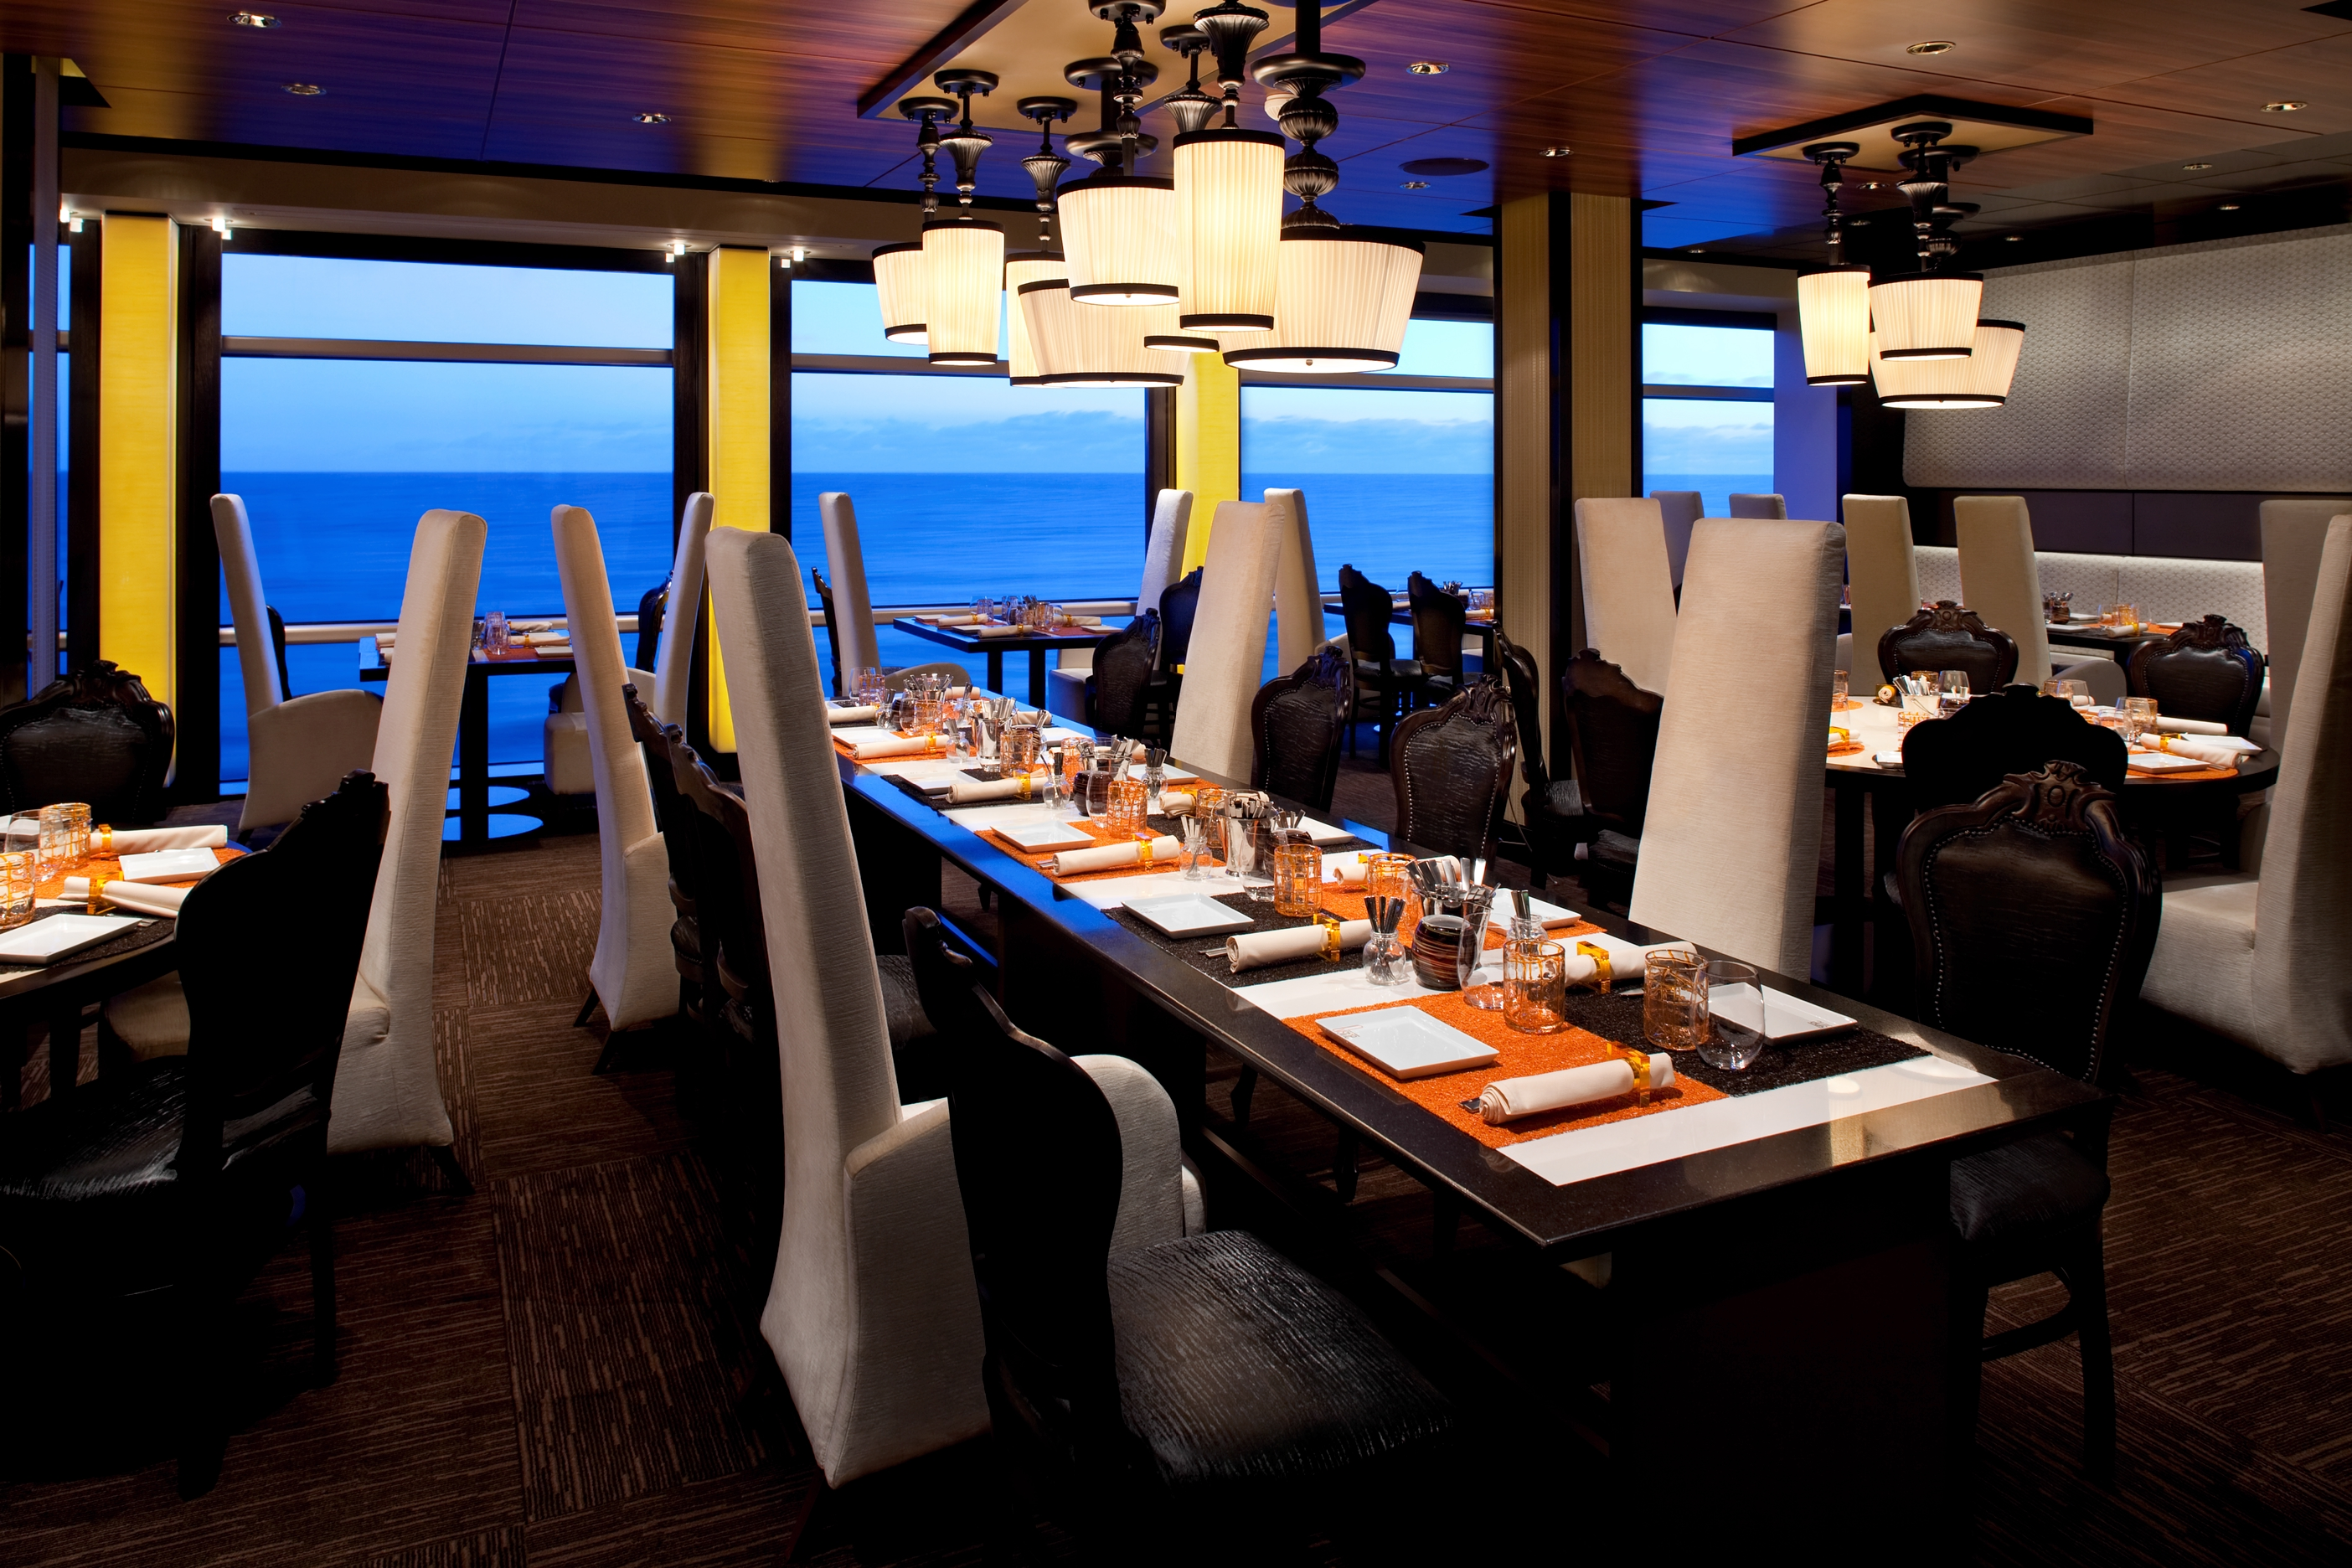 celebrity cruises celebrity eclipse Qsine restaurant.jpg